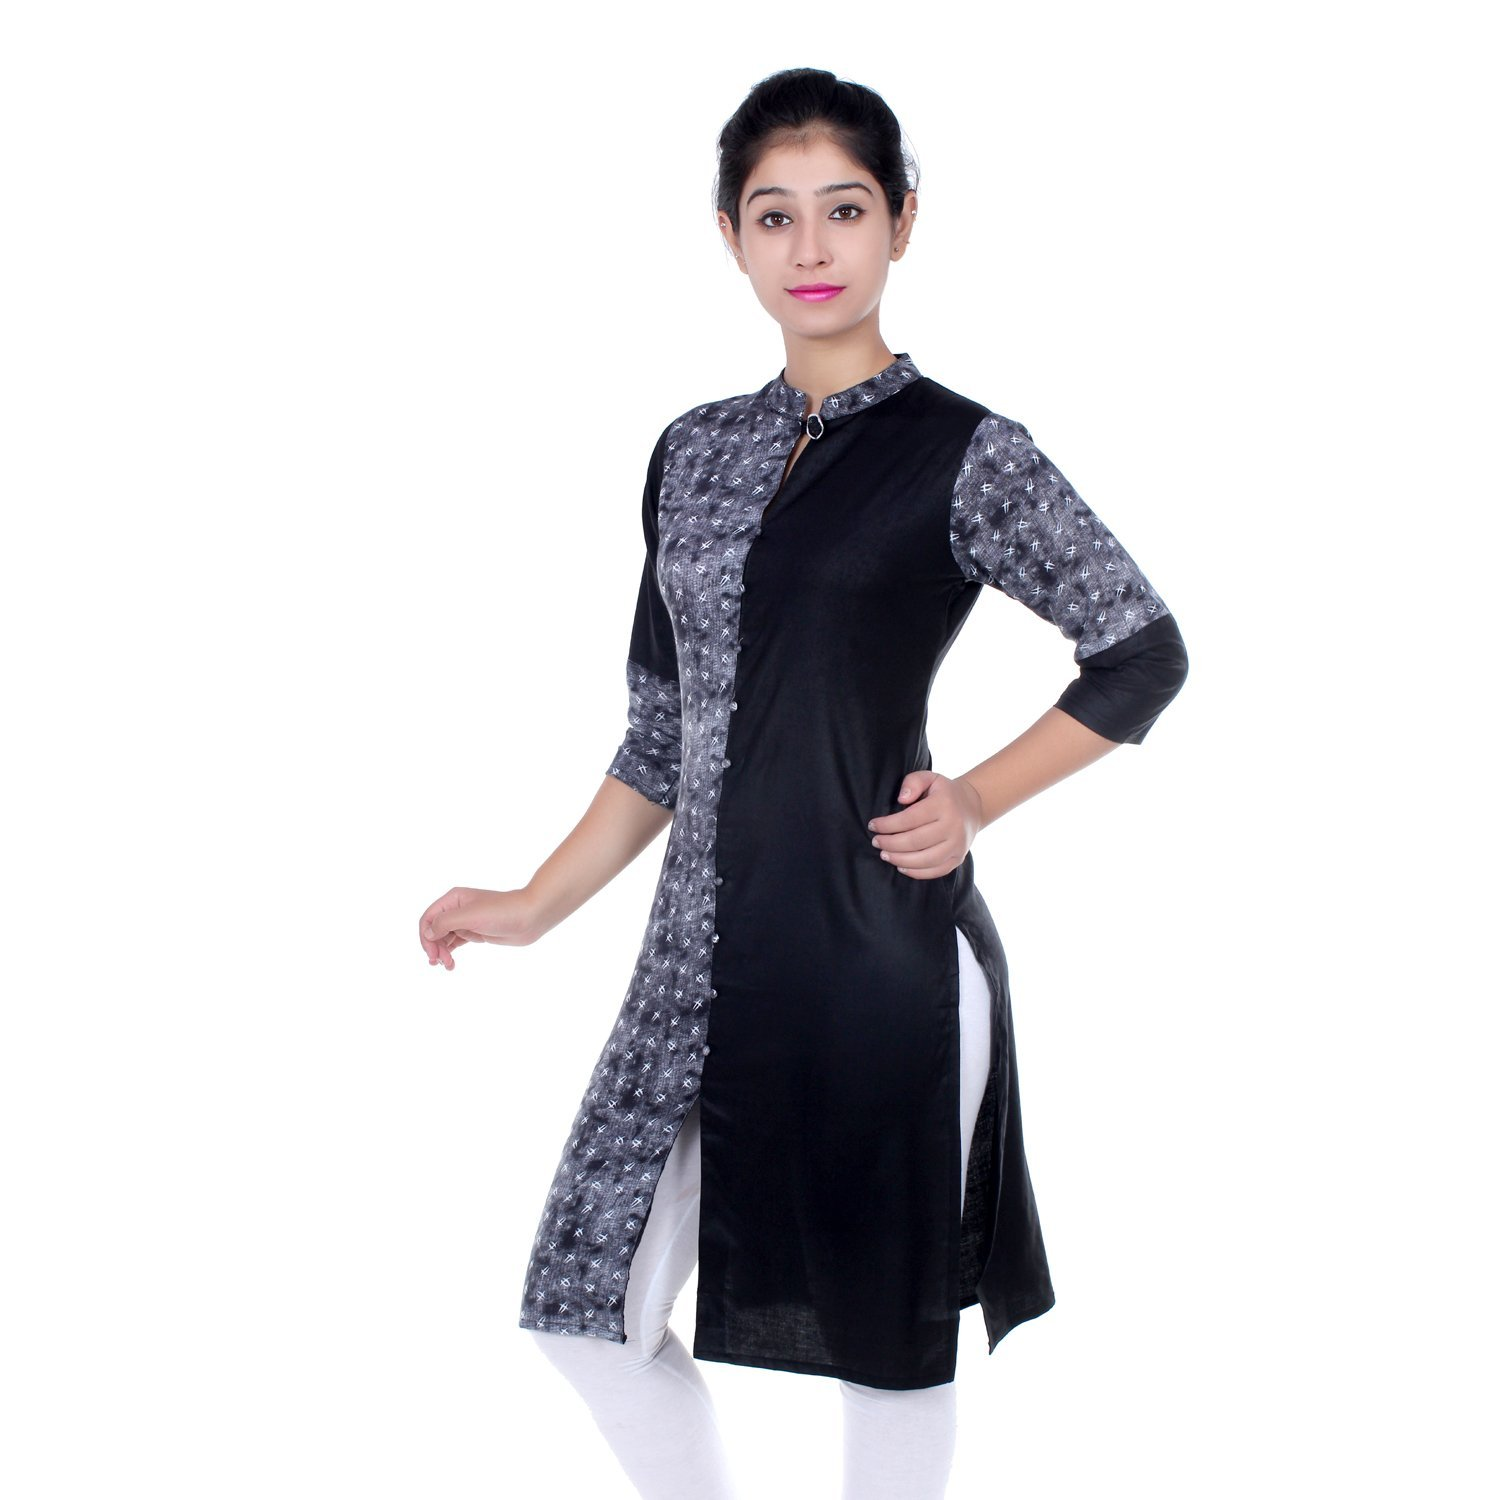 Chichi Indian Women Kurta Kurti 3/4 Sleeve Medium Size Plain with One Side Printed Straight Black-White Top by CHI (Image #3)